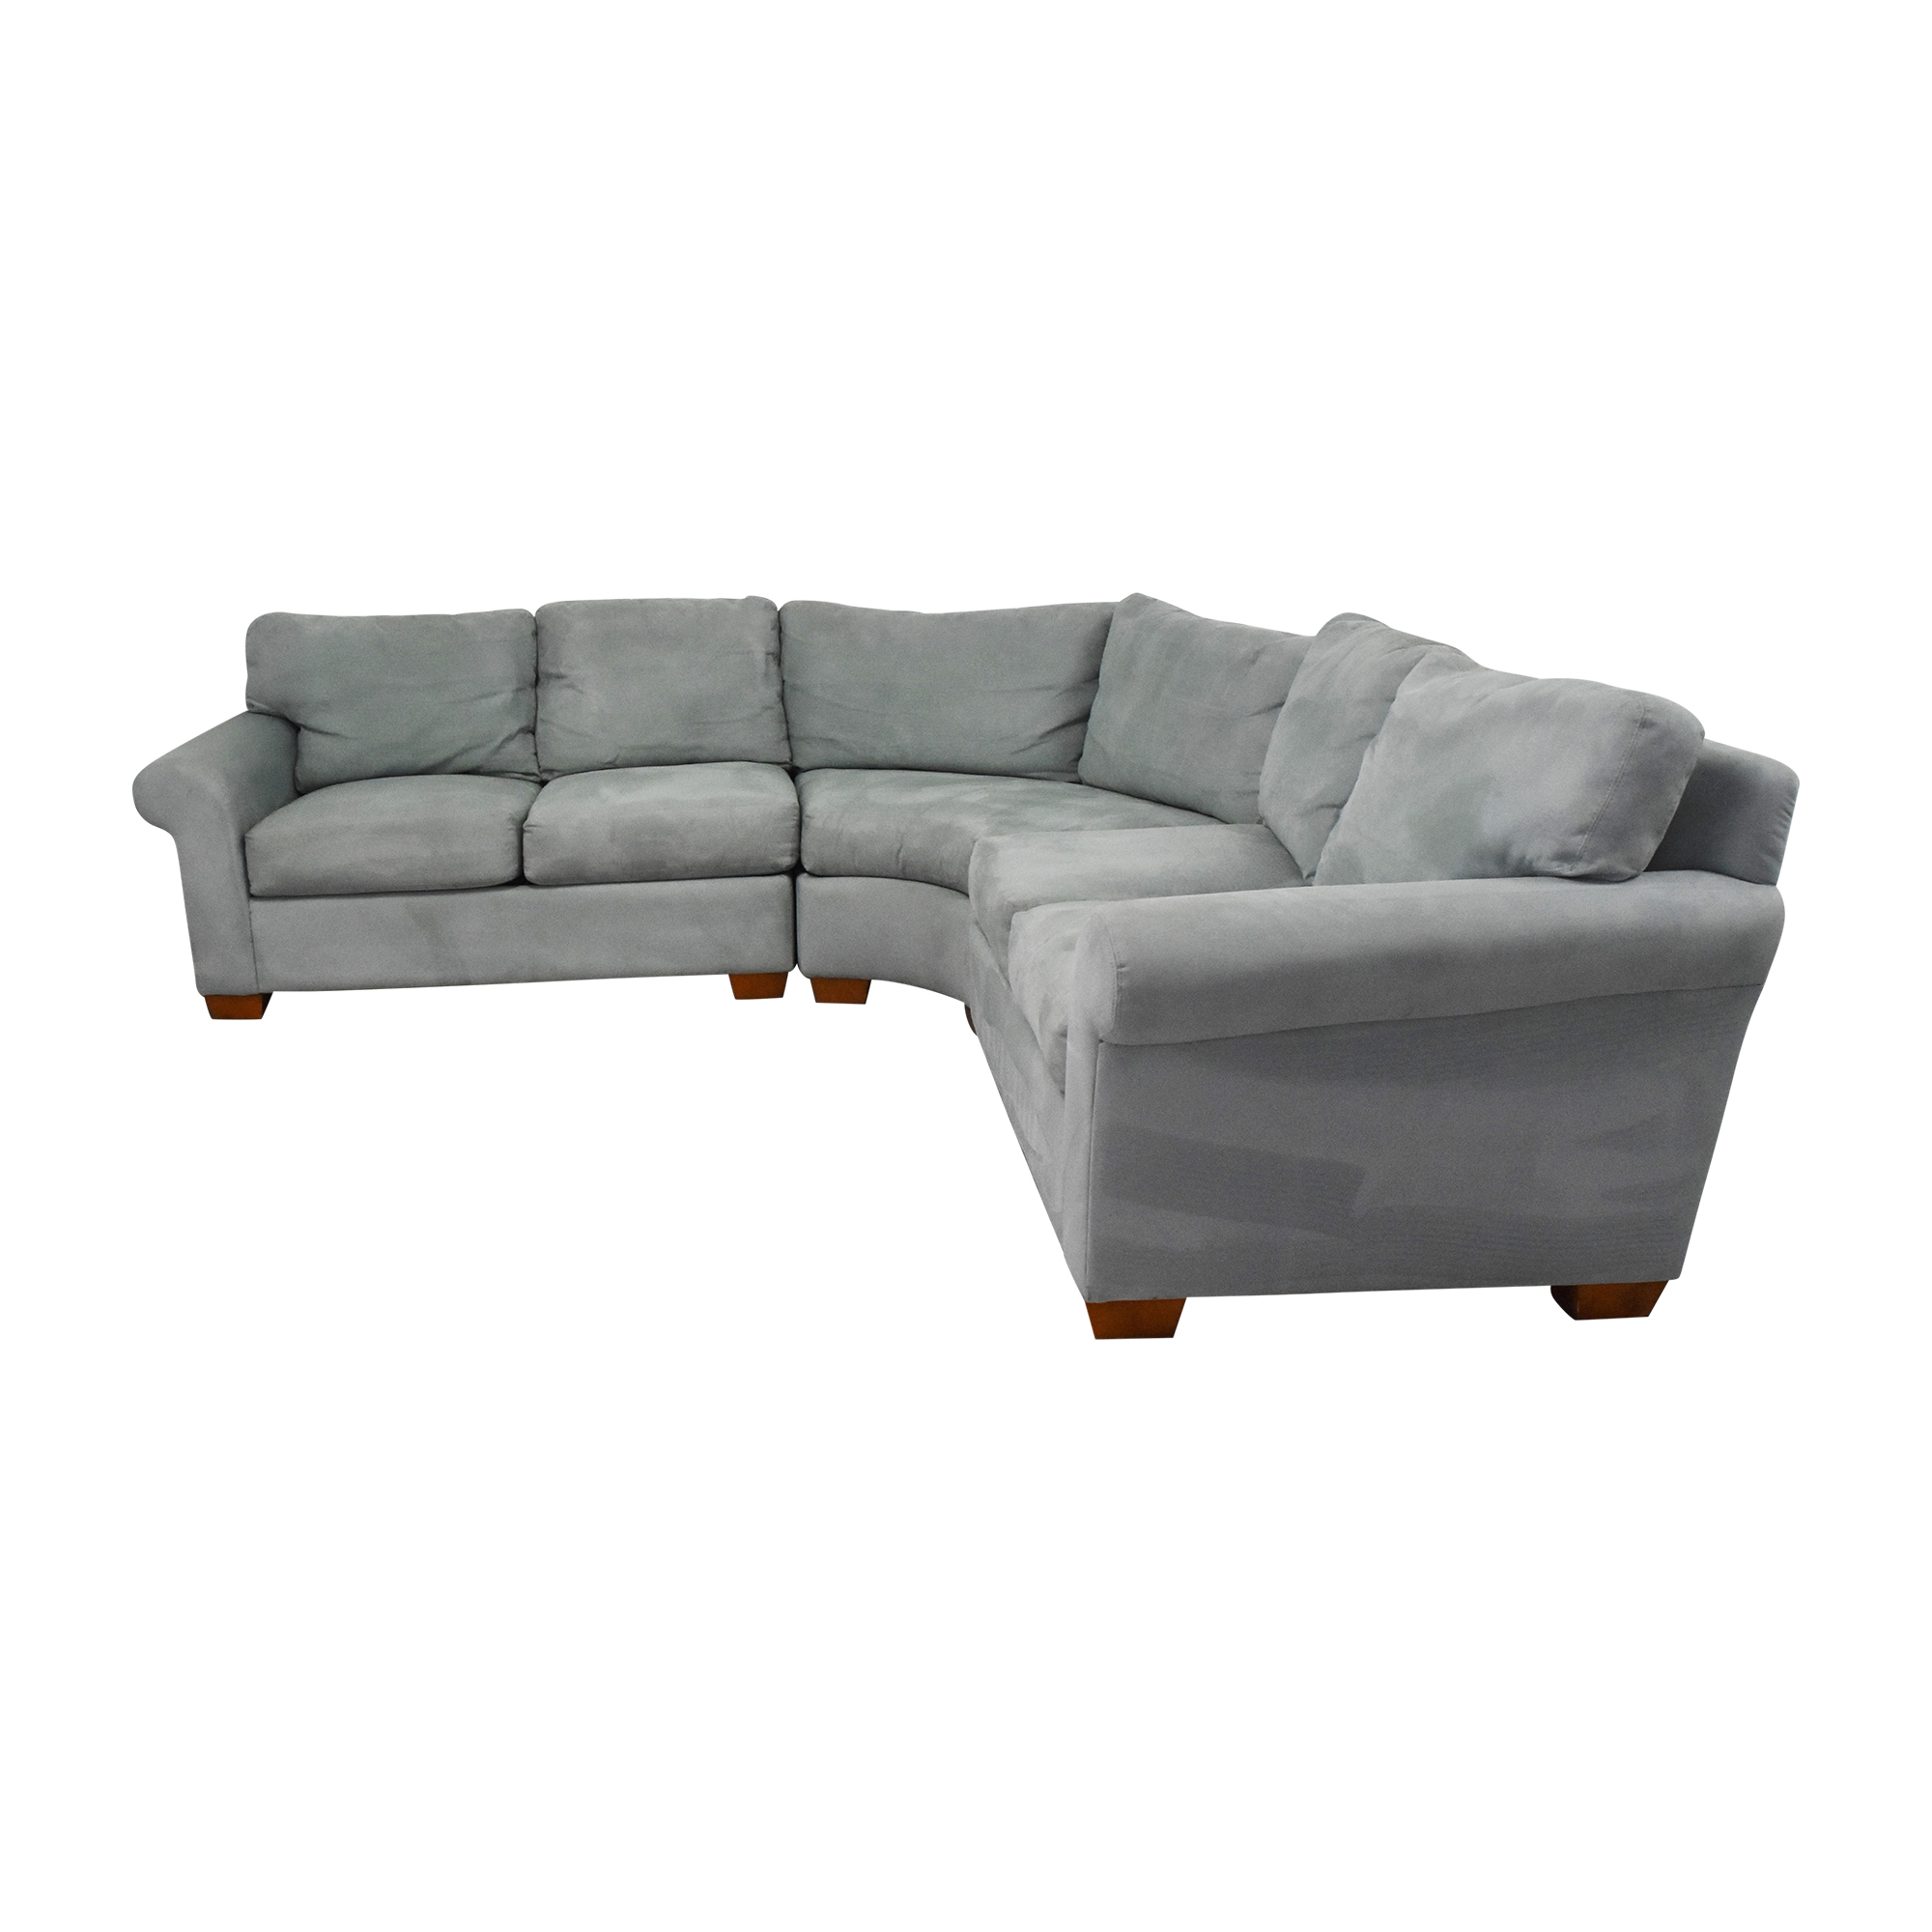 Youngs Furniture Youngs Furniture Three Piece Corner Sectional used